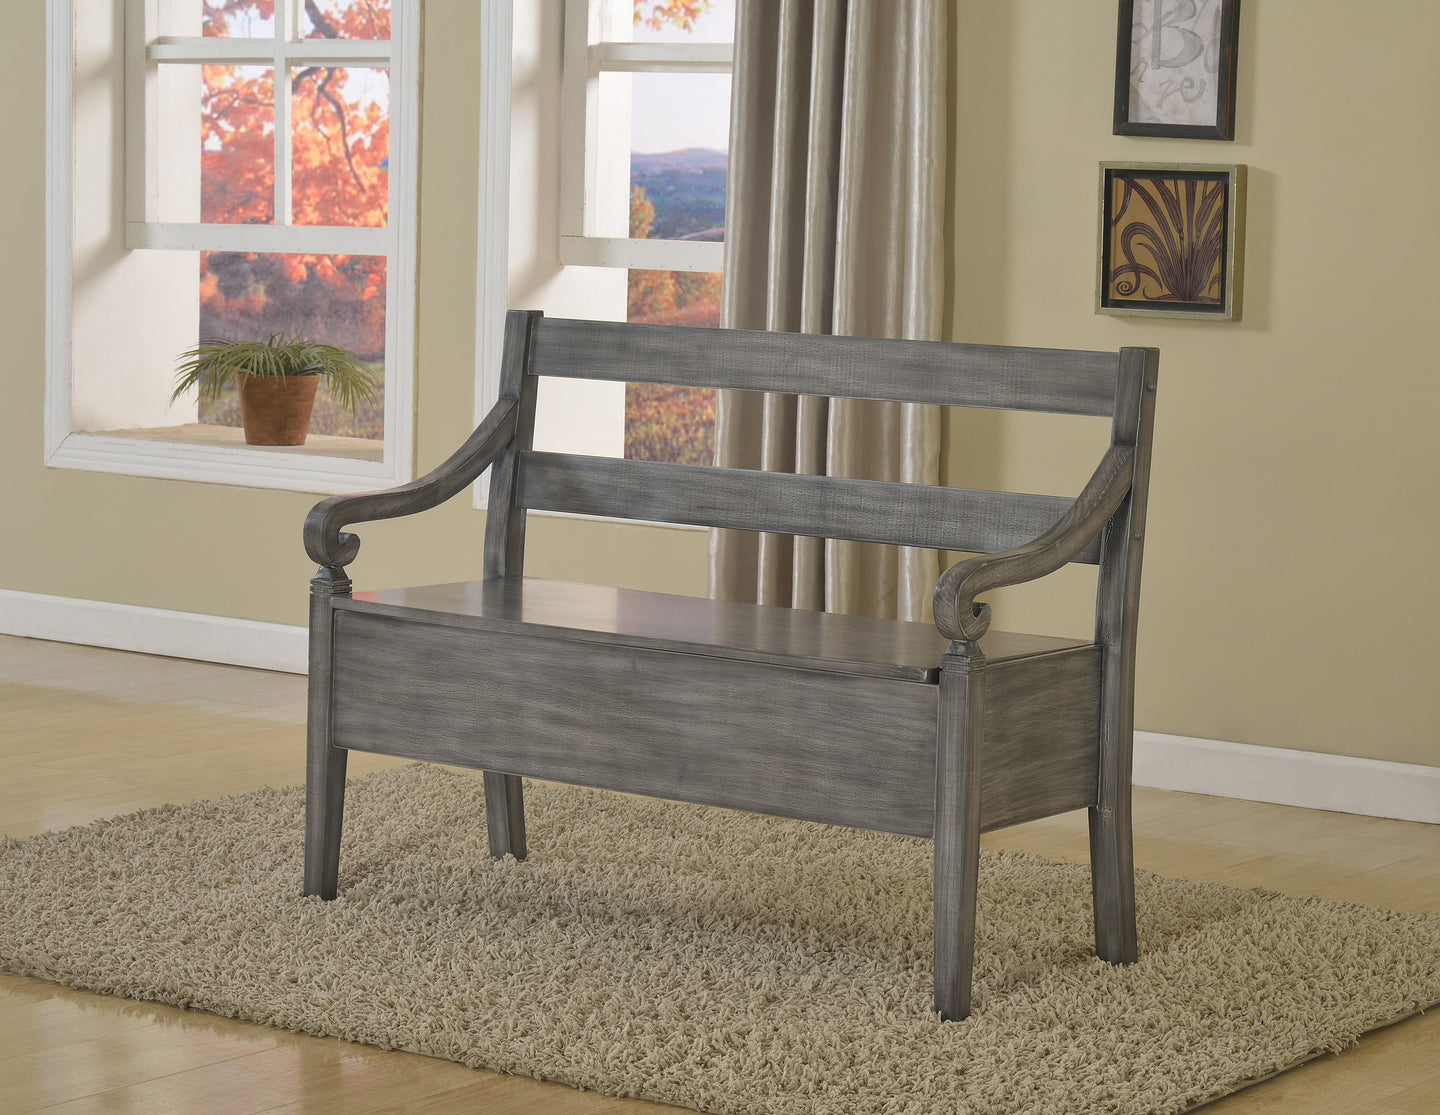 Kennedy 4183 Grey Storage Bench - Bellaria Furniture HomeStore